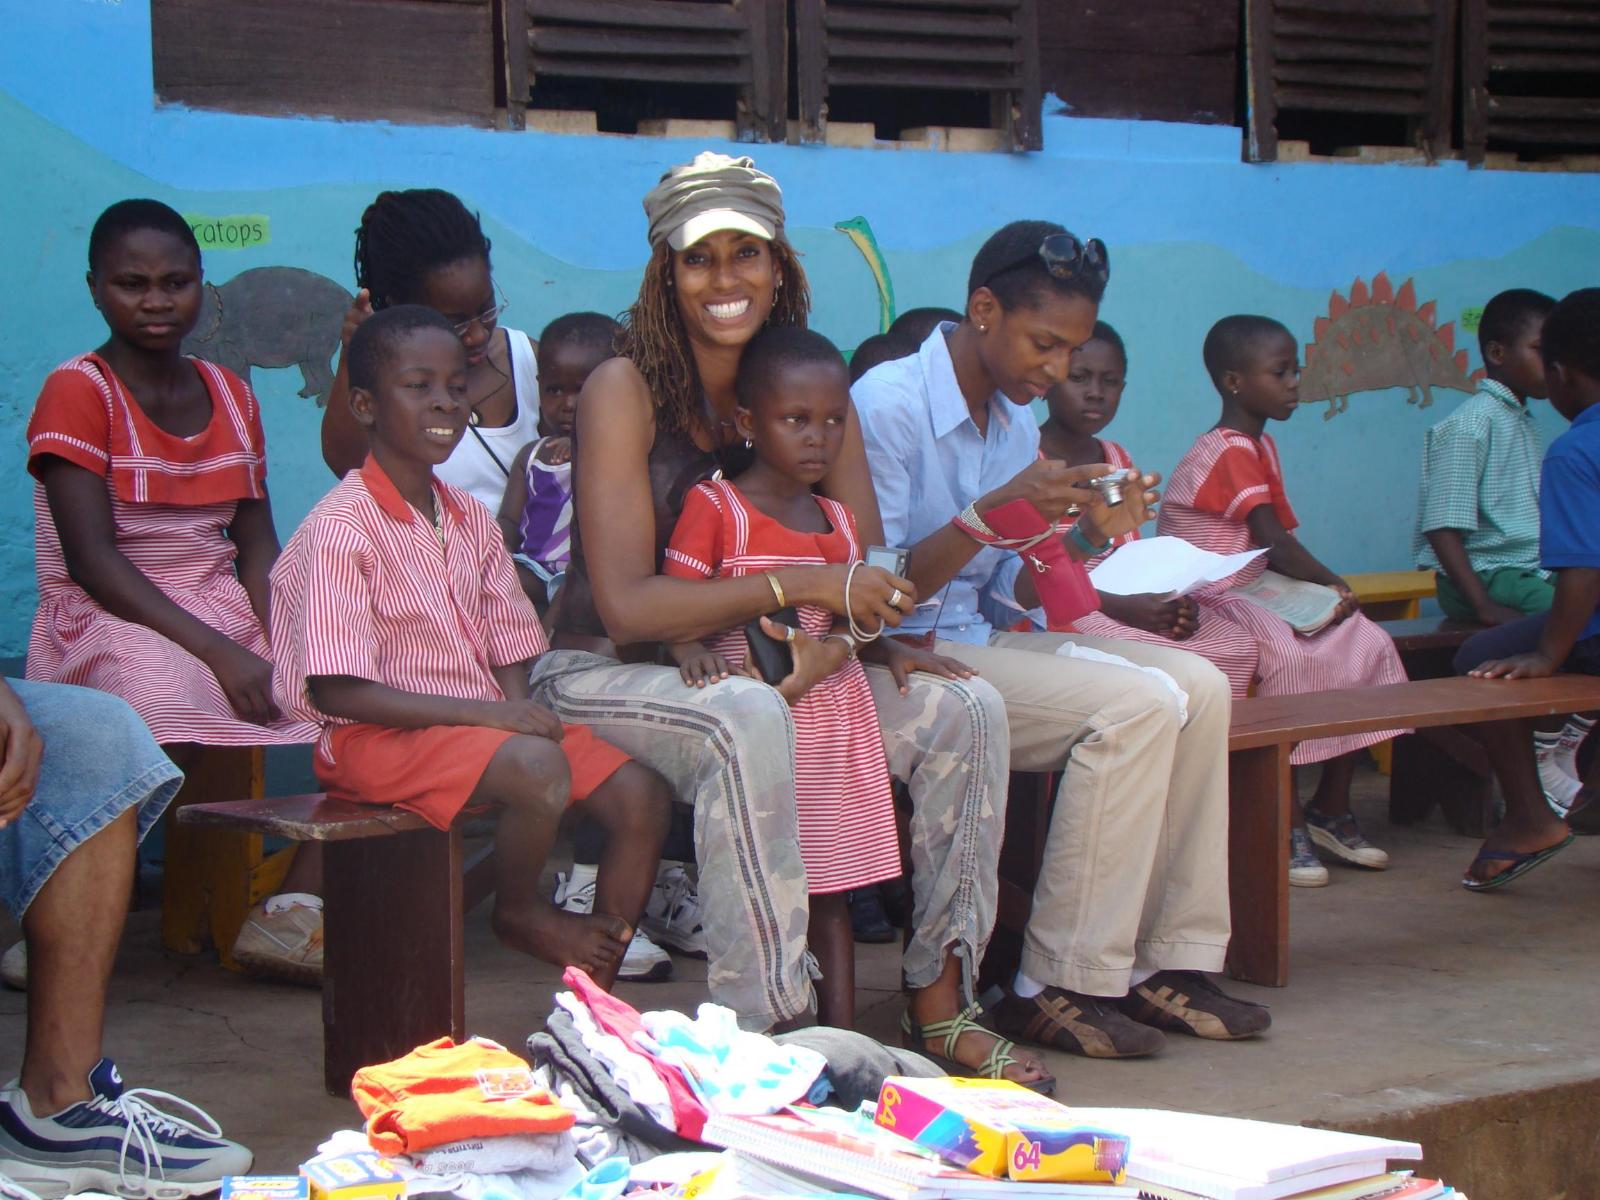 Socializing with the children of Ghana